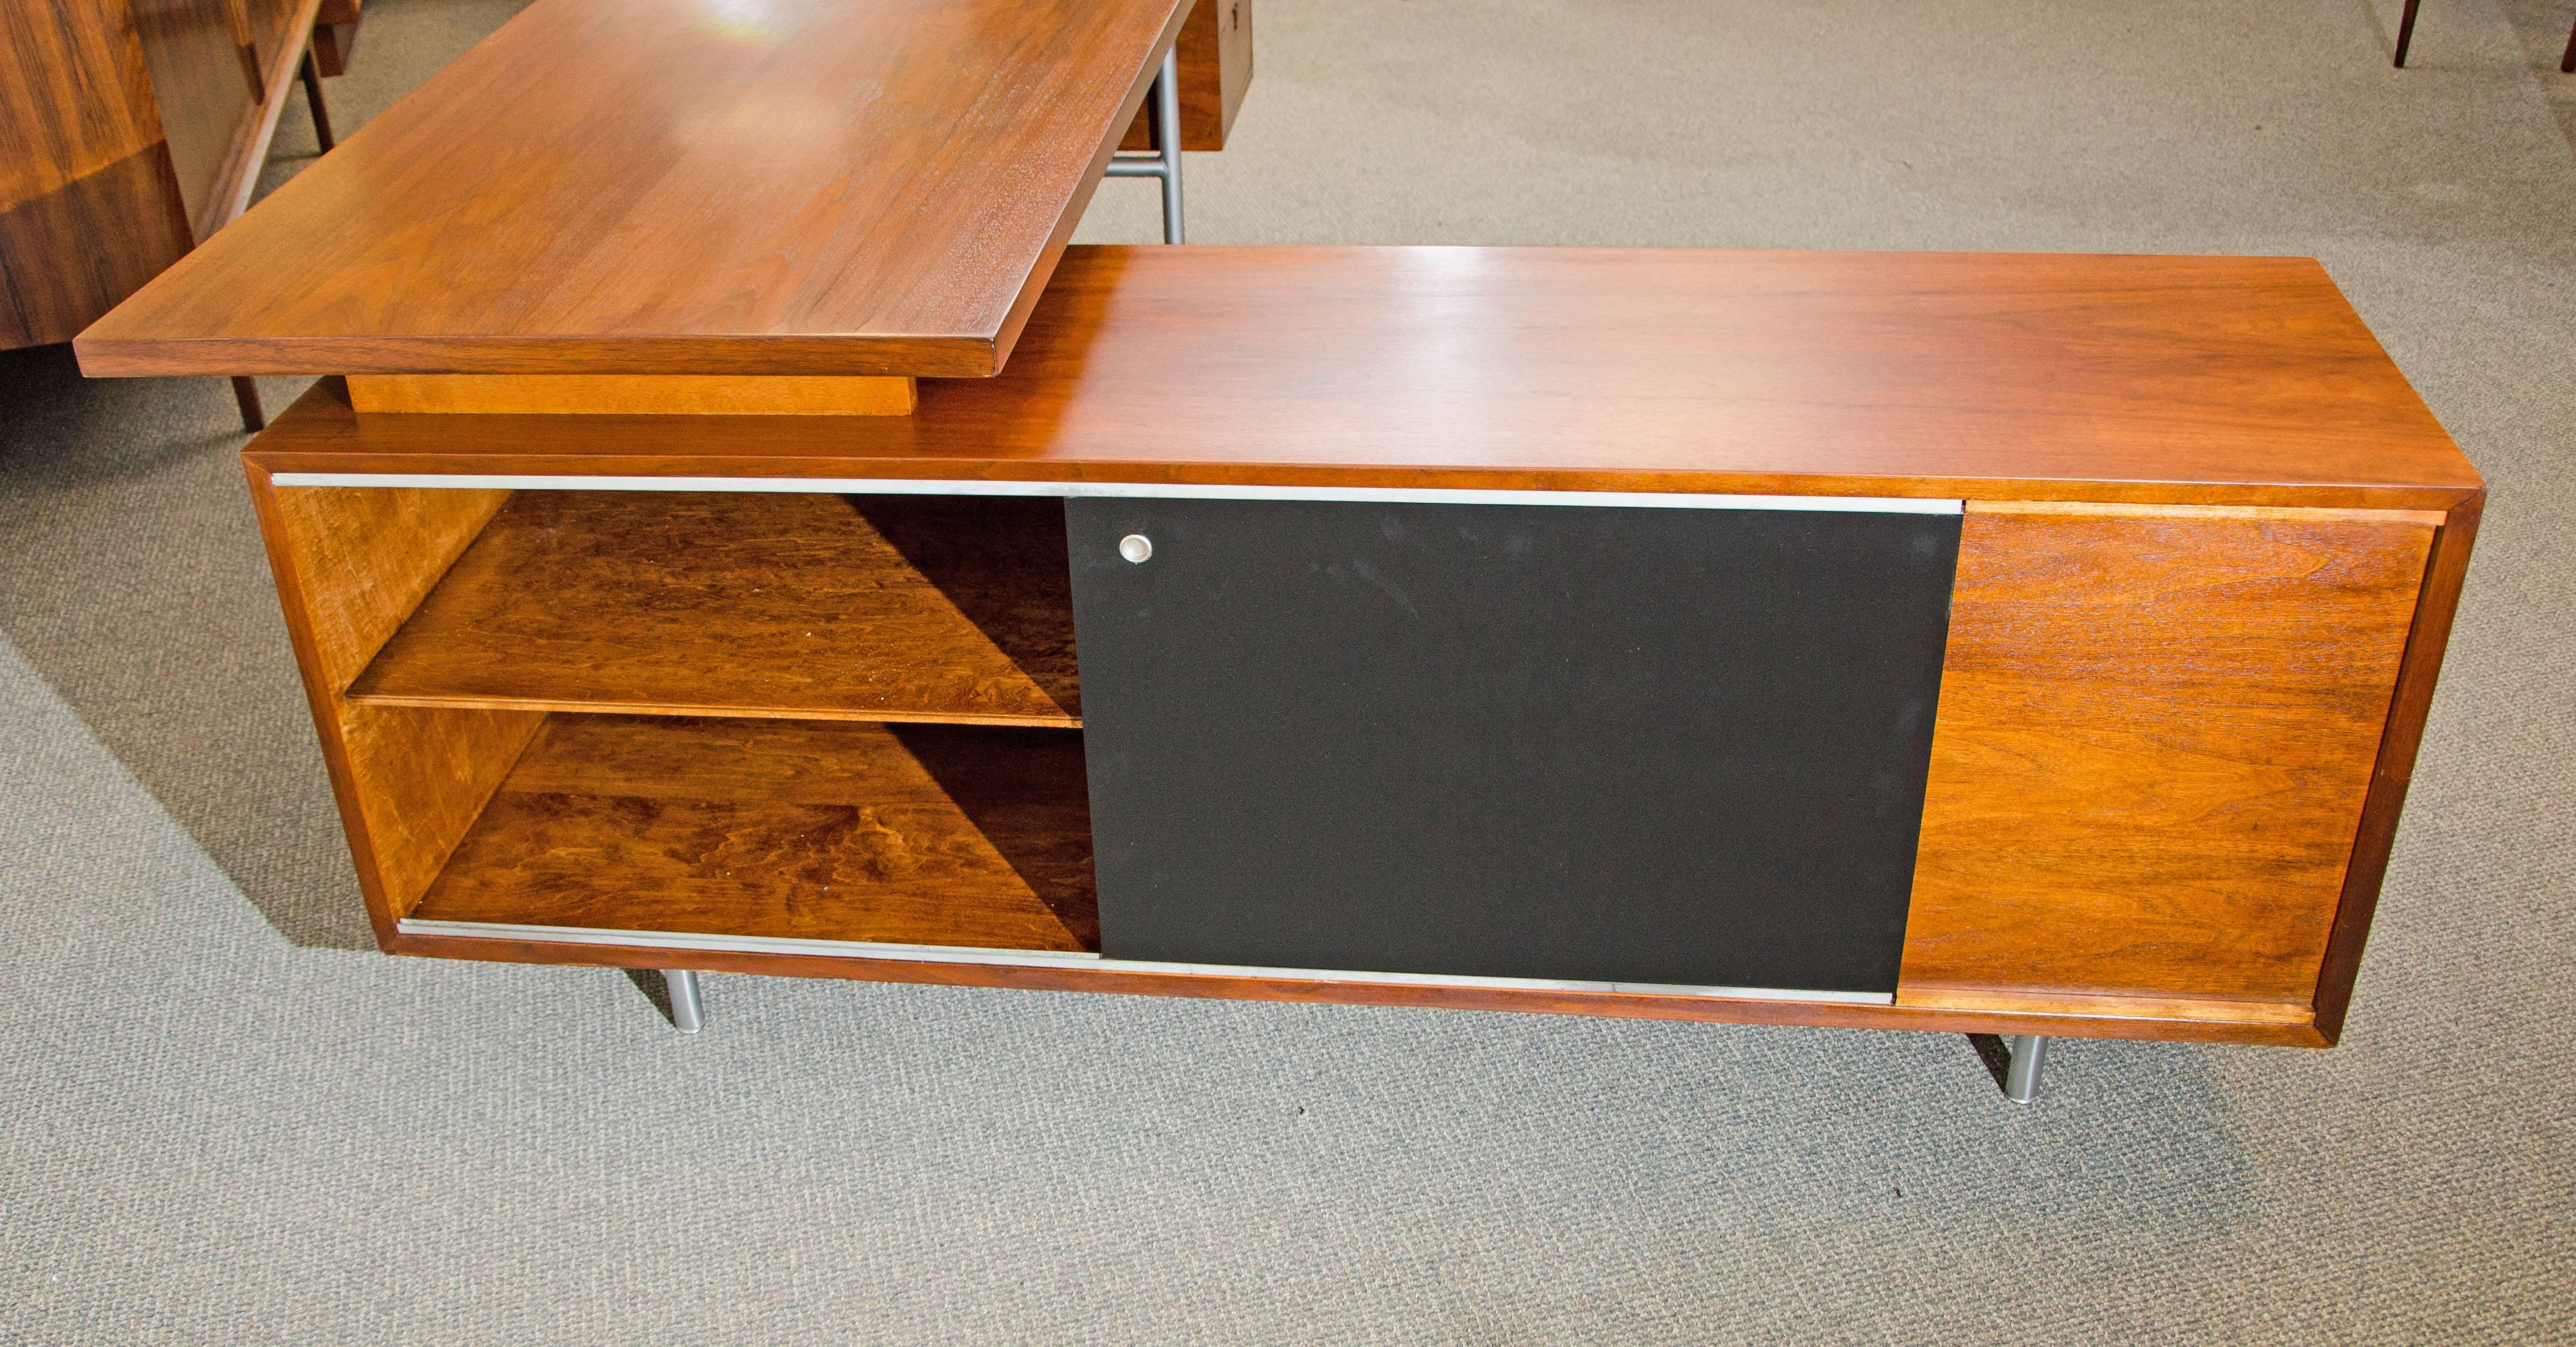 Walnut Excutive Desk With Credenza Return By George Nelson For Herman Miller At 1stdibs